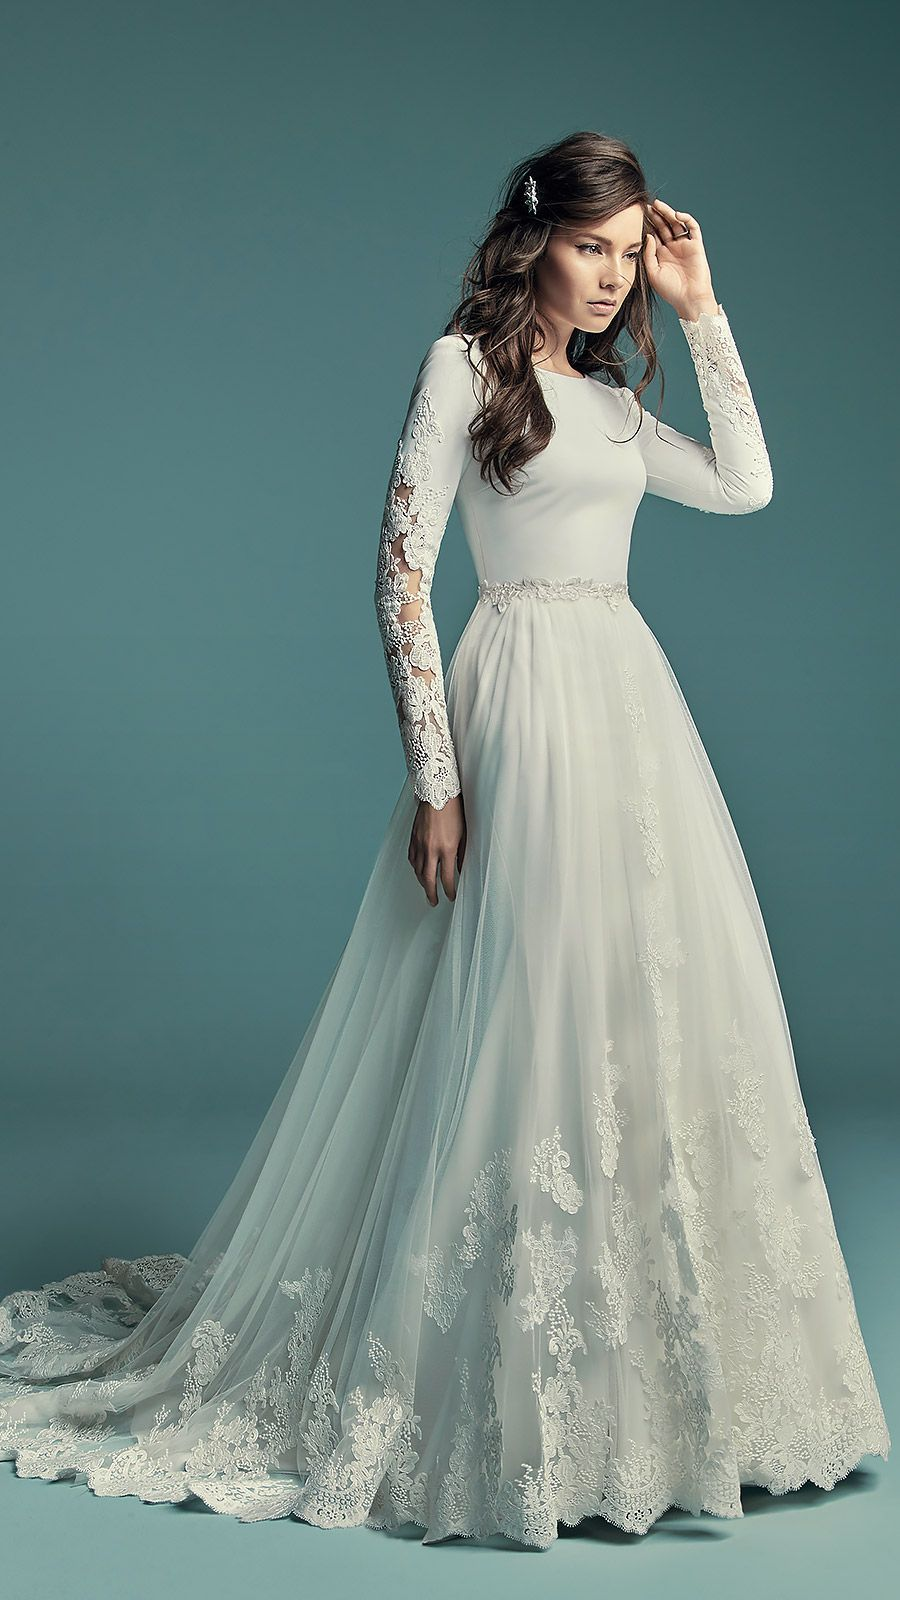 Olyssia By Maggie Sottero Wedding Dresses And Accessories Sleeved Wedding Wedding Dress Long Sleeve Ball Gowns Wedding [ 1600 x 900 Pixel ]